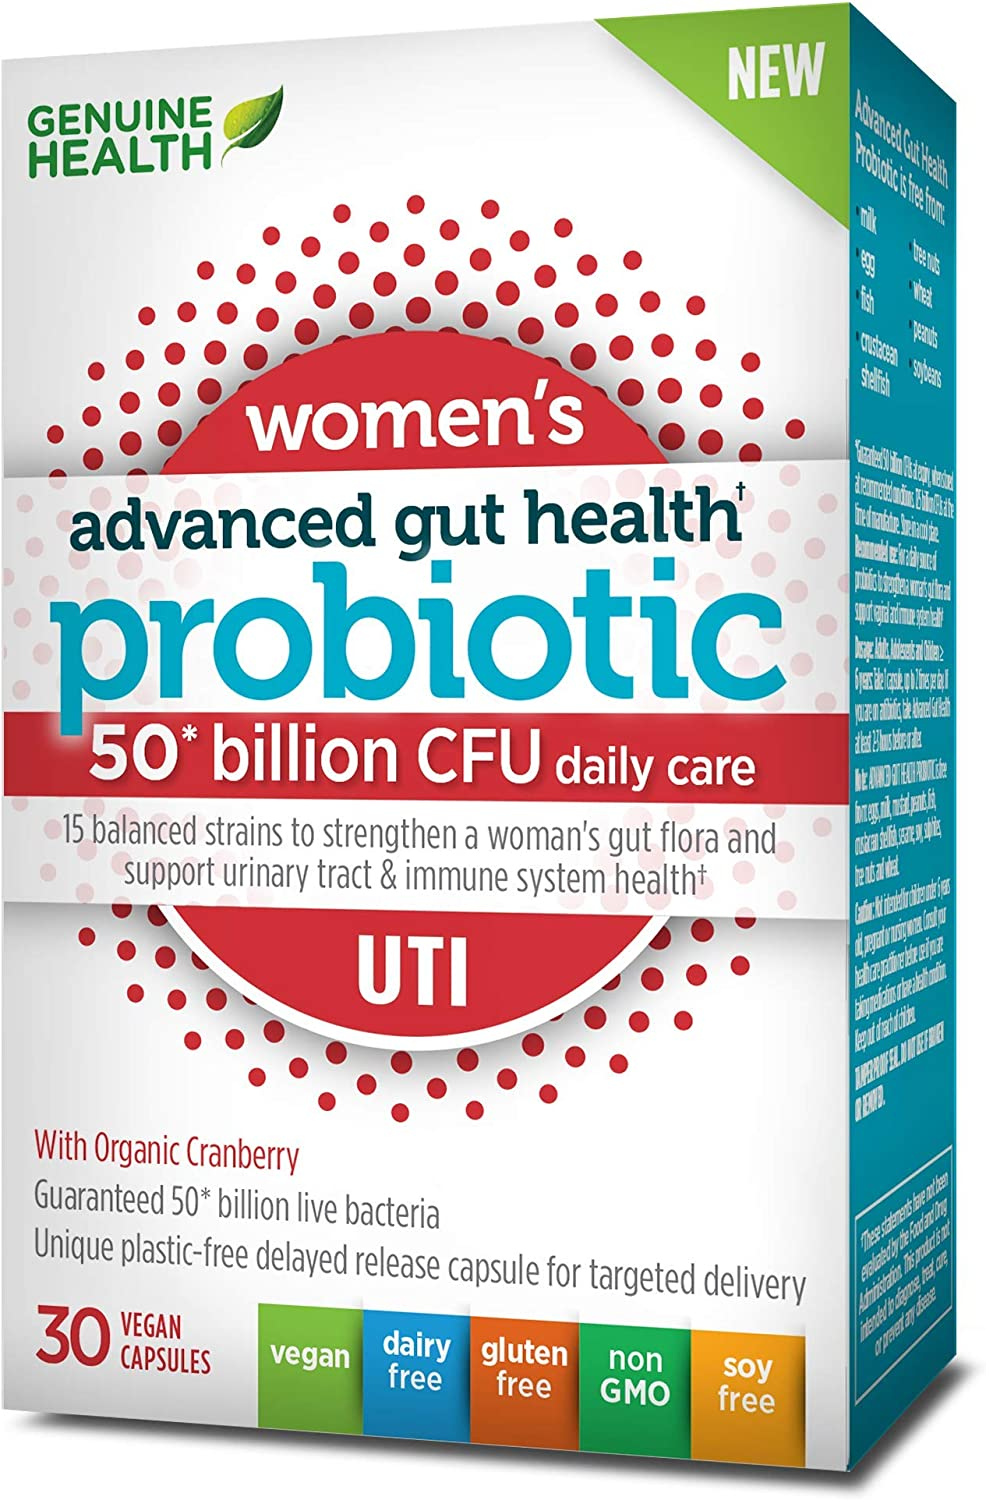 Genuine Health Advanced Gut Health Probiotics for Women UTI 50 Billion CFU, 15 Diverse Strains, Vegan Delayed-Release Capsules, 30 Count